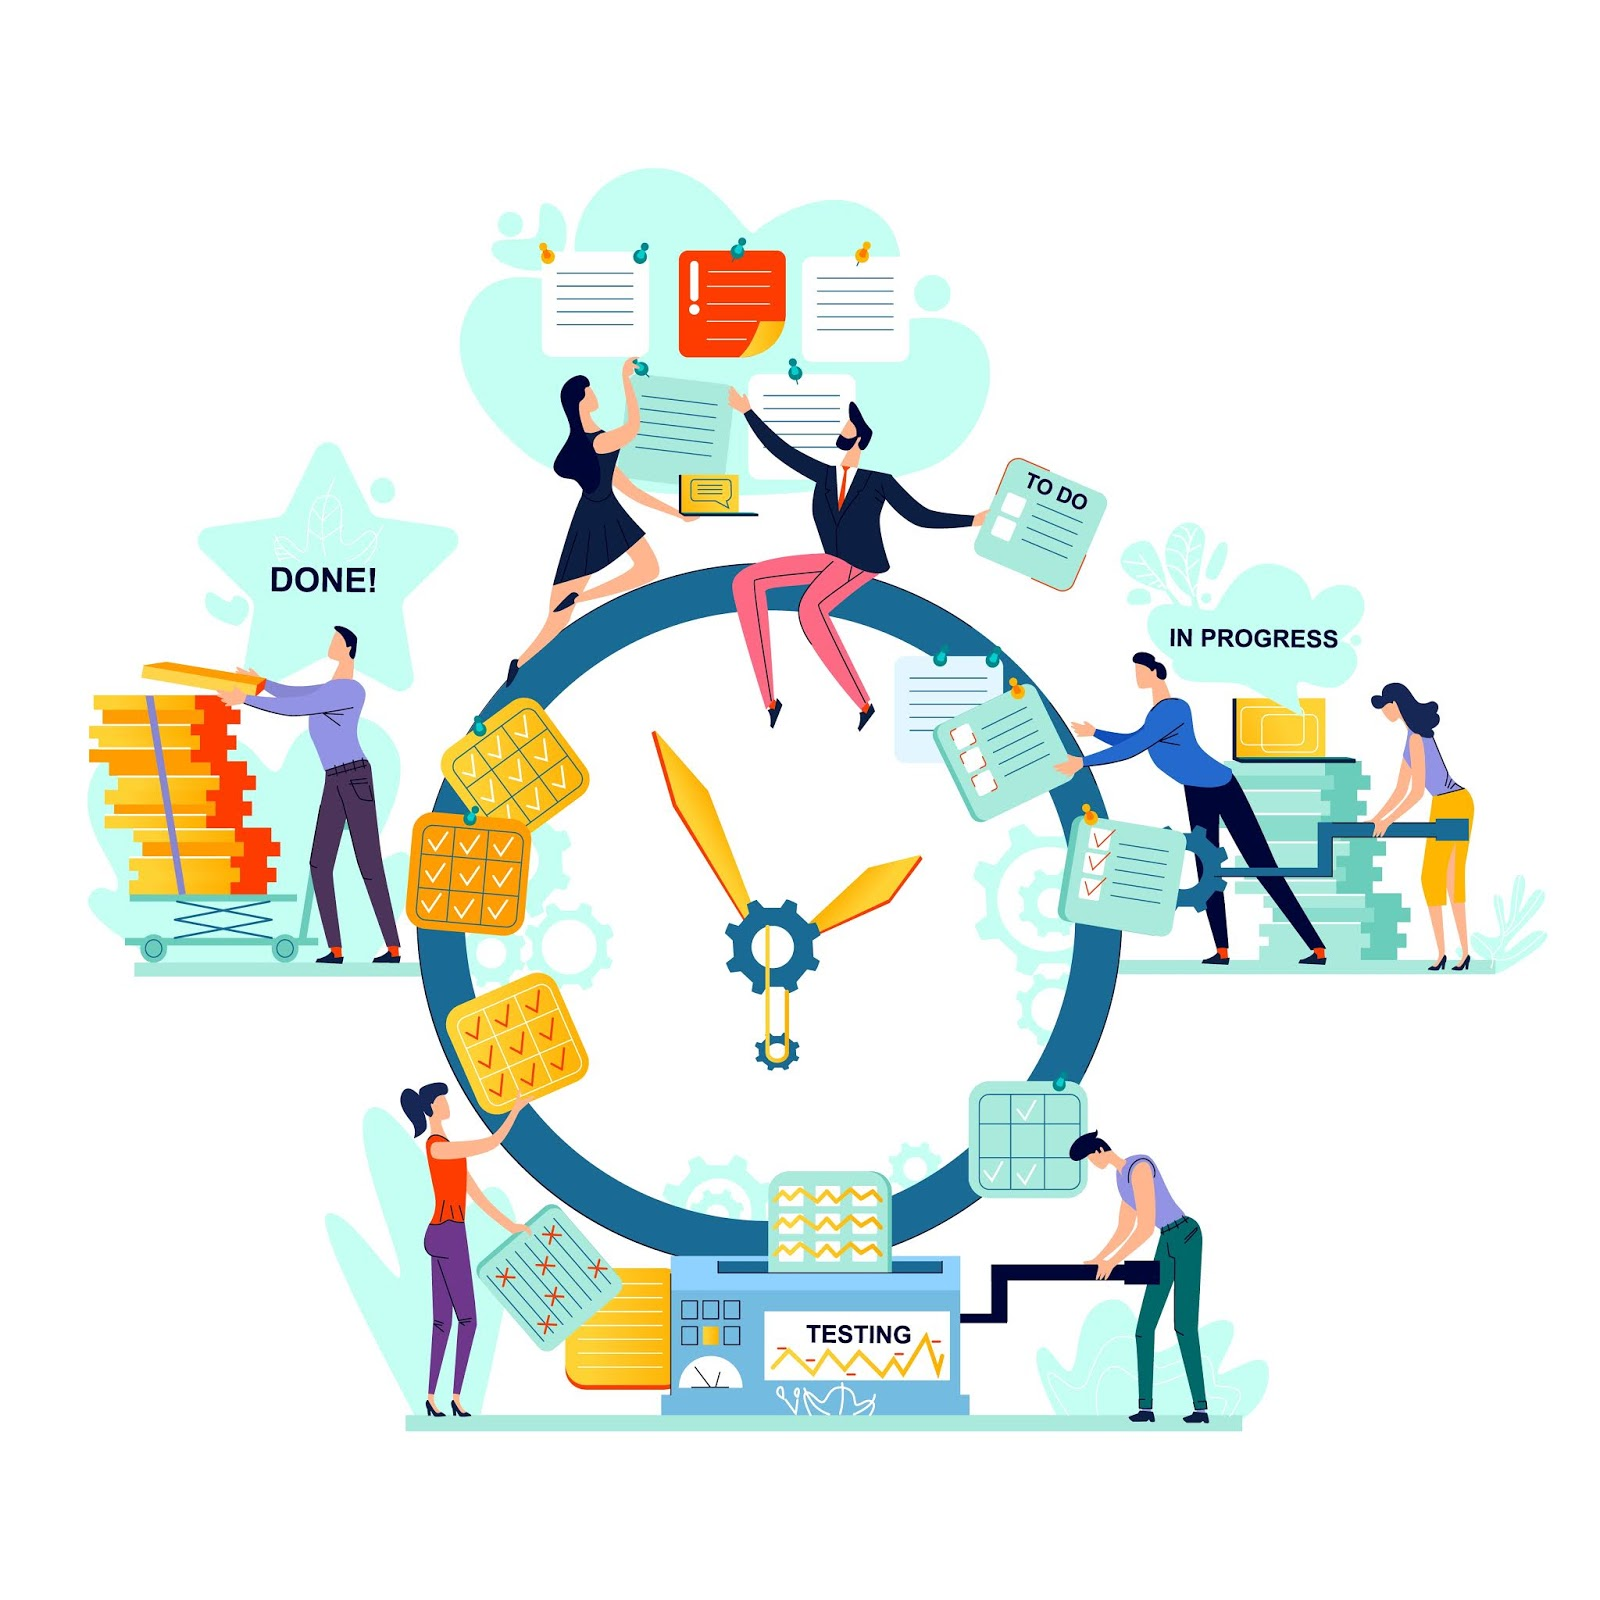 Deadline Time Management Business Concept Vector	 Free Download Vector CDR, AI, EPS and PNG Formats